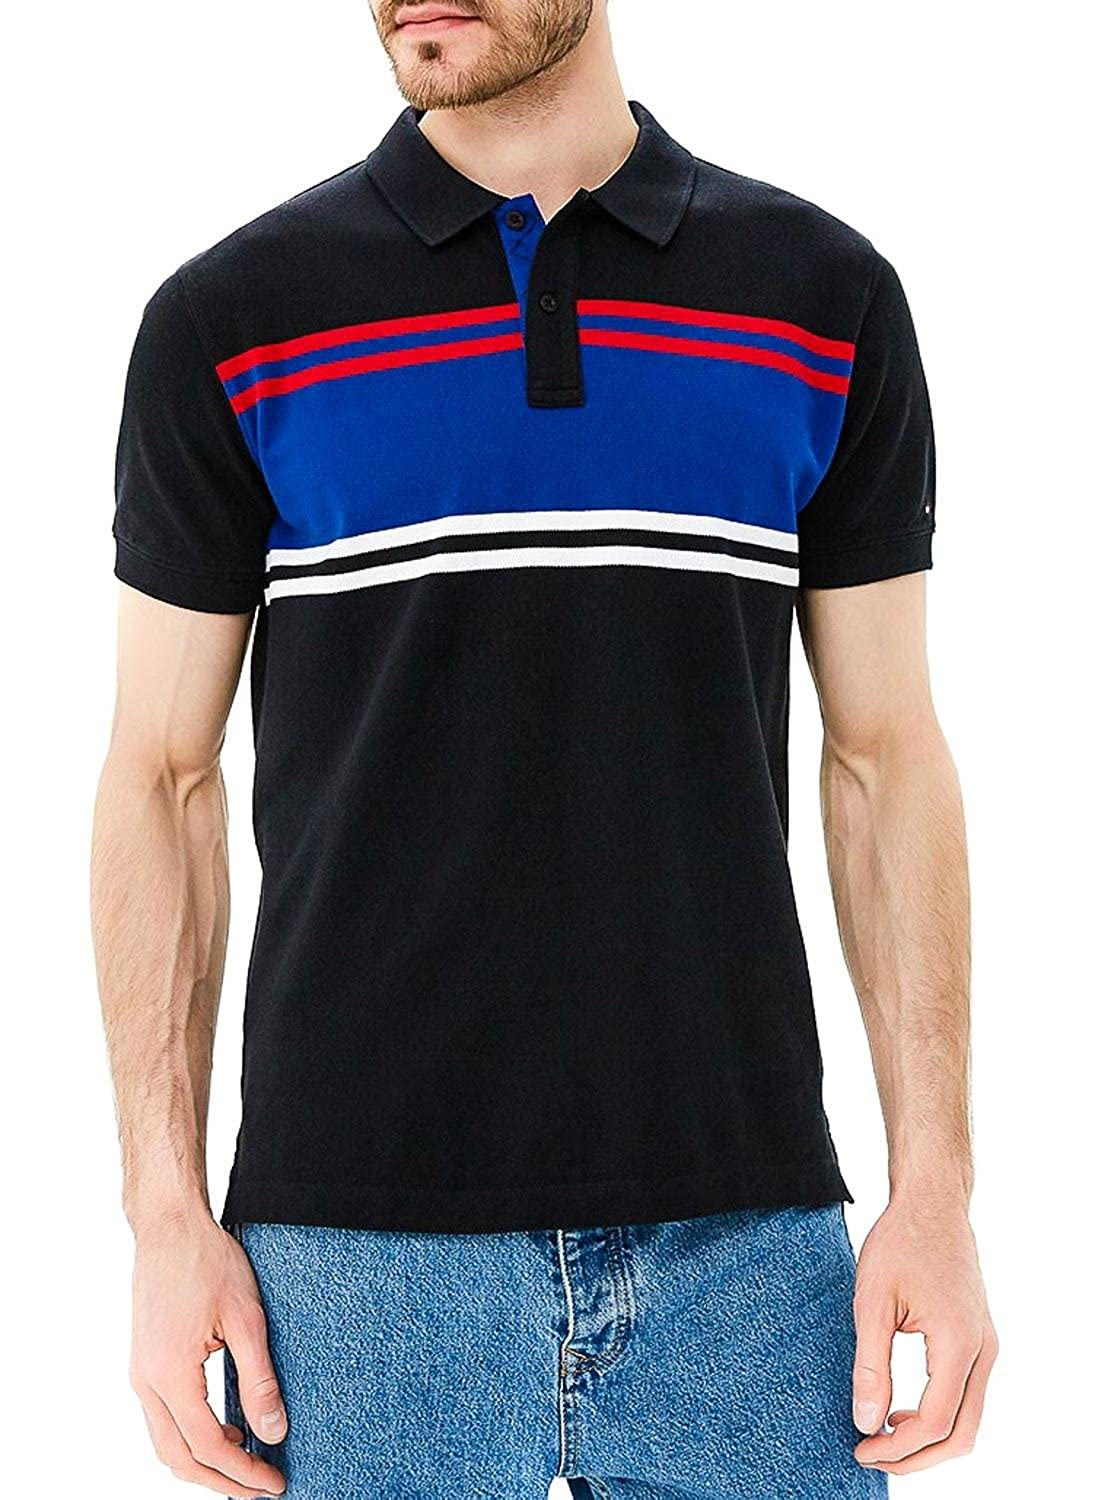 Tommy Hilfiger Polo Abstract XXL Negro: Amazon.es: Ropa y accesorios